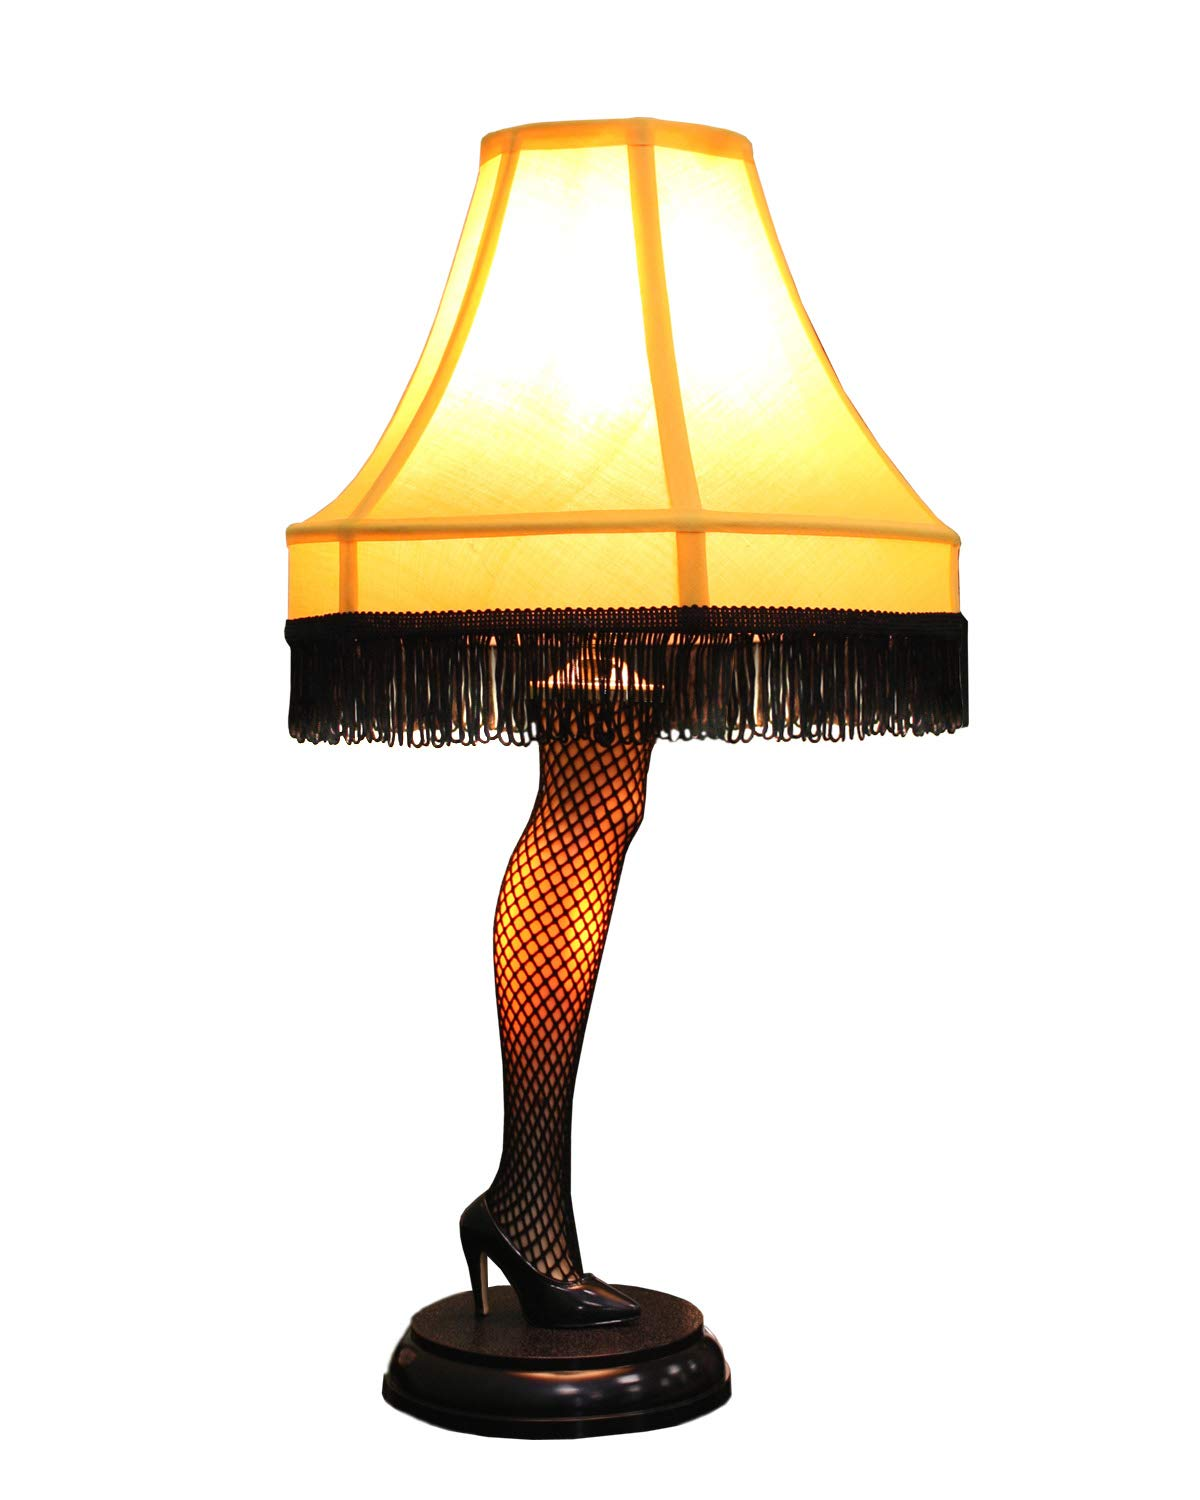 A Christmas Story 20 inch Leg Lamp Prop Replica by NECA by NECA